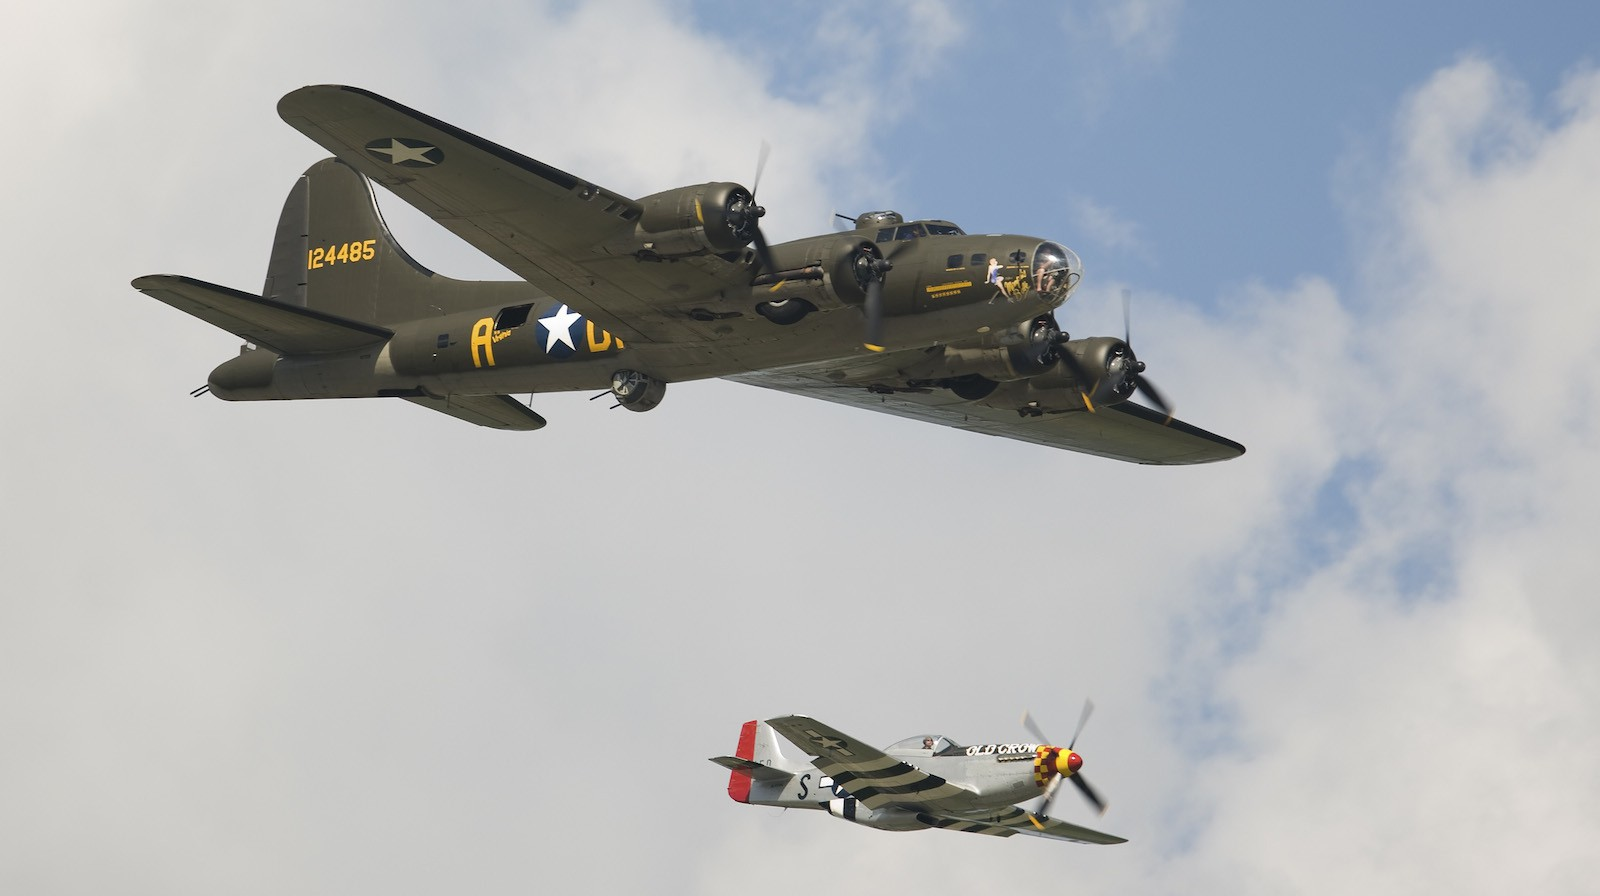 U.S. military planes from the World War II era B-17 Bomber (L) and and a P-51 fly over prior to the Coca-Cola 600 NASCAR race in Concord, North Carolina on May 30, 2010. REUTERS/Chris Keane (UNITED STATES - Tags: SPORT MOTOR RACING TRANSPORT) - RTR2EKME